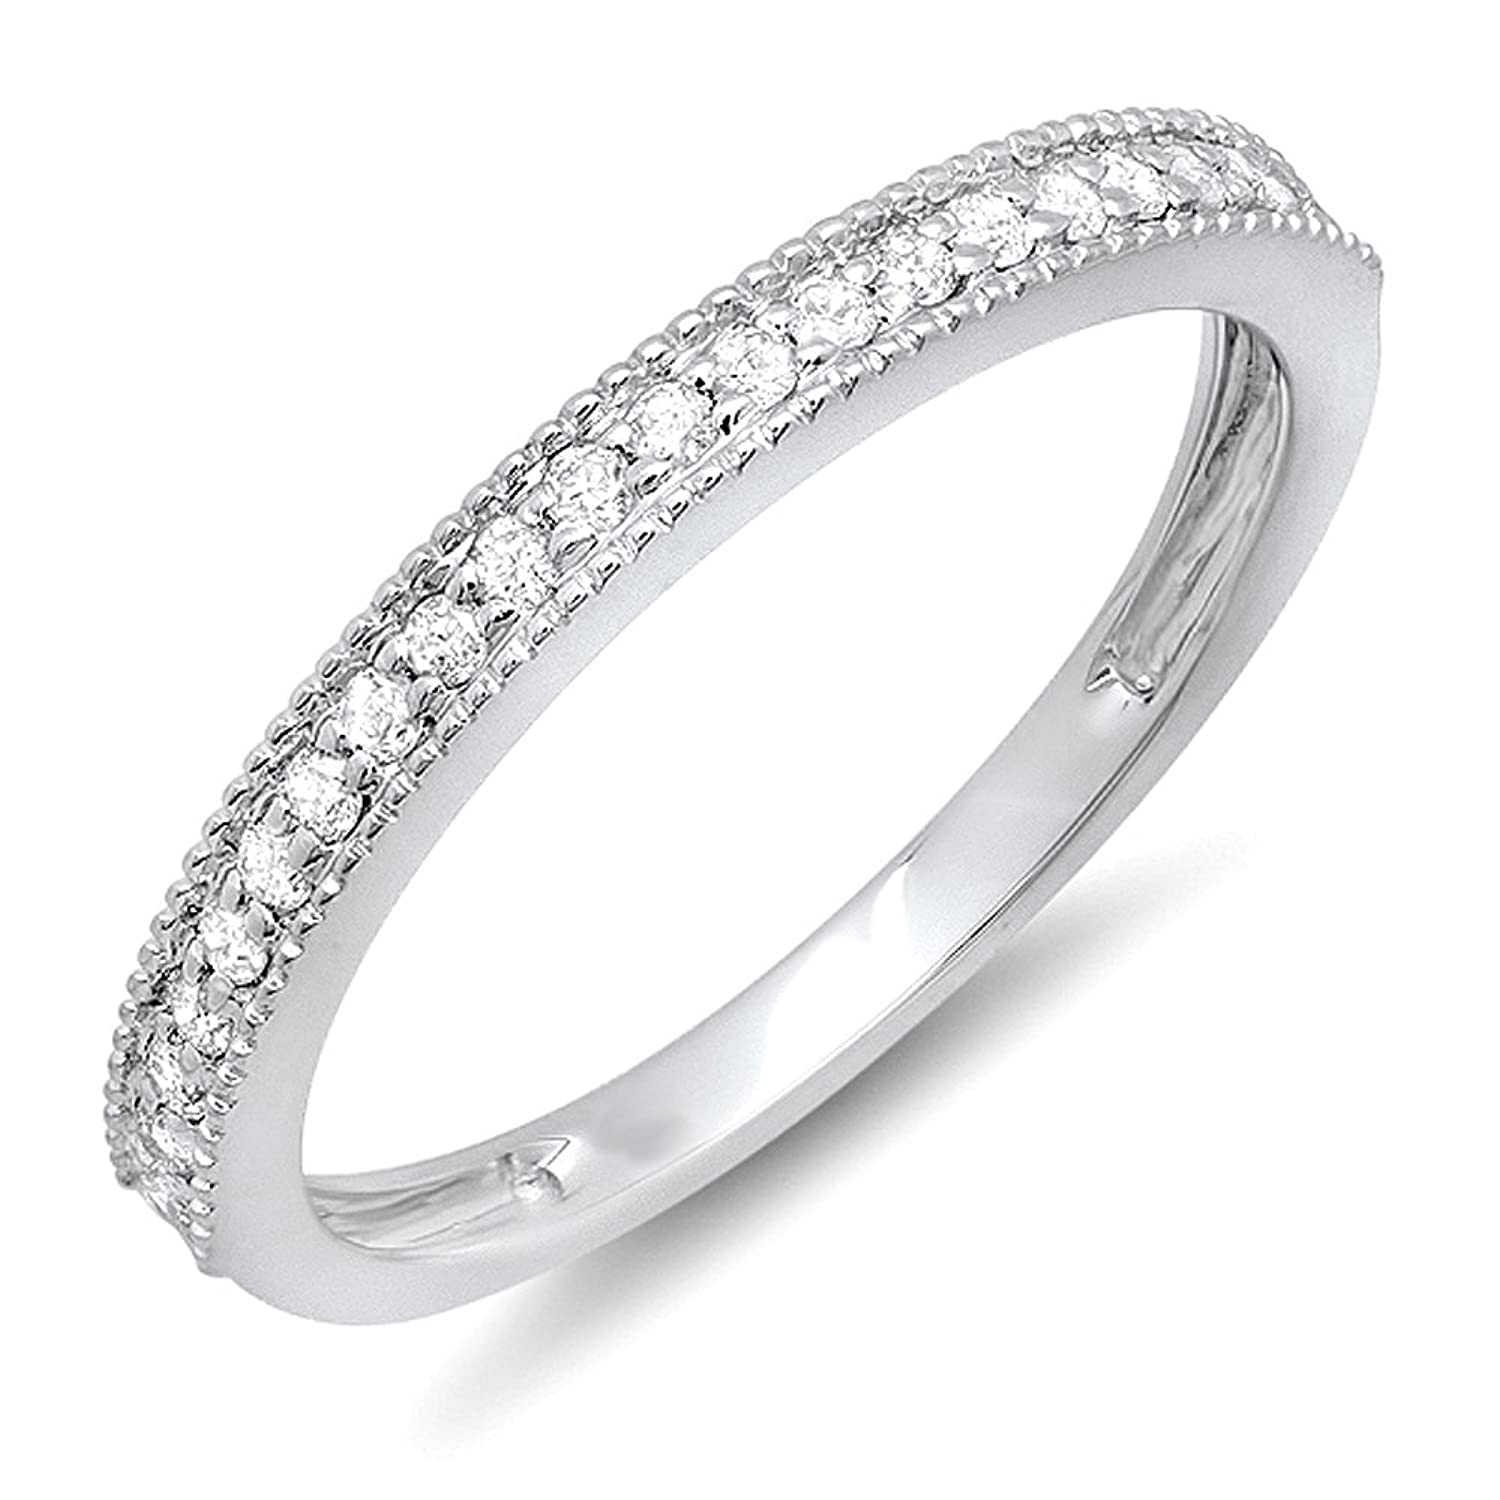 0.25 Carat (ctw) 10k White Gold Round Diamond Ladies Anniversary Wedding Band Stackable Ring 1/4 CT